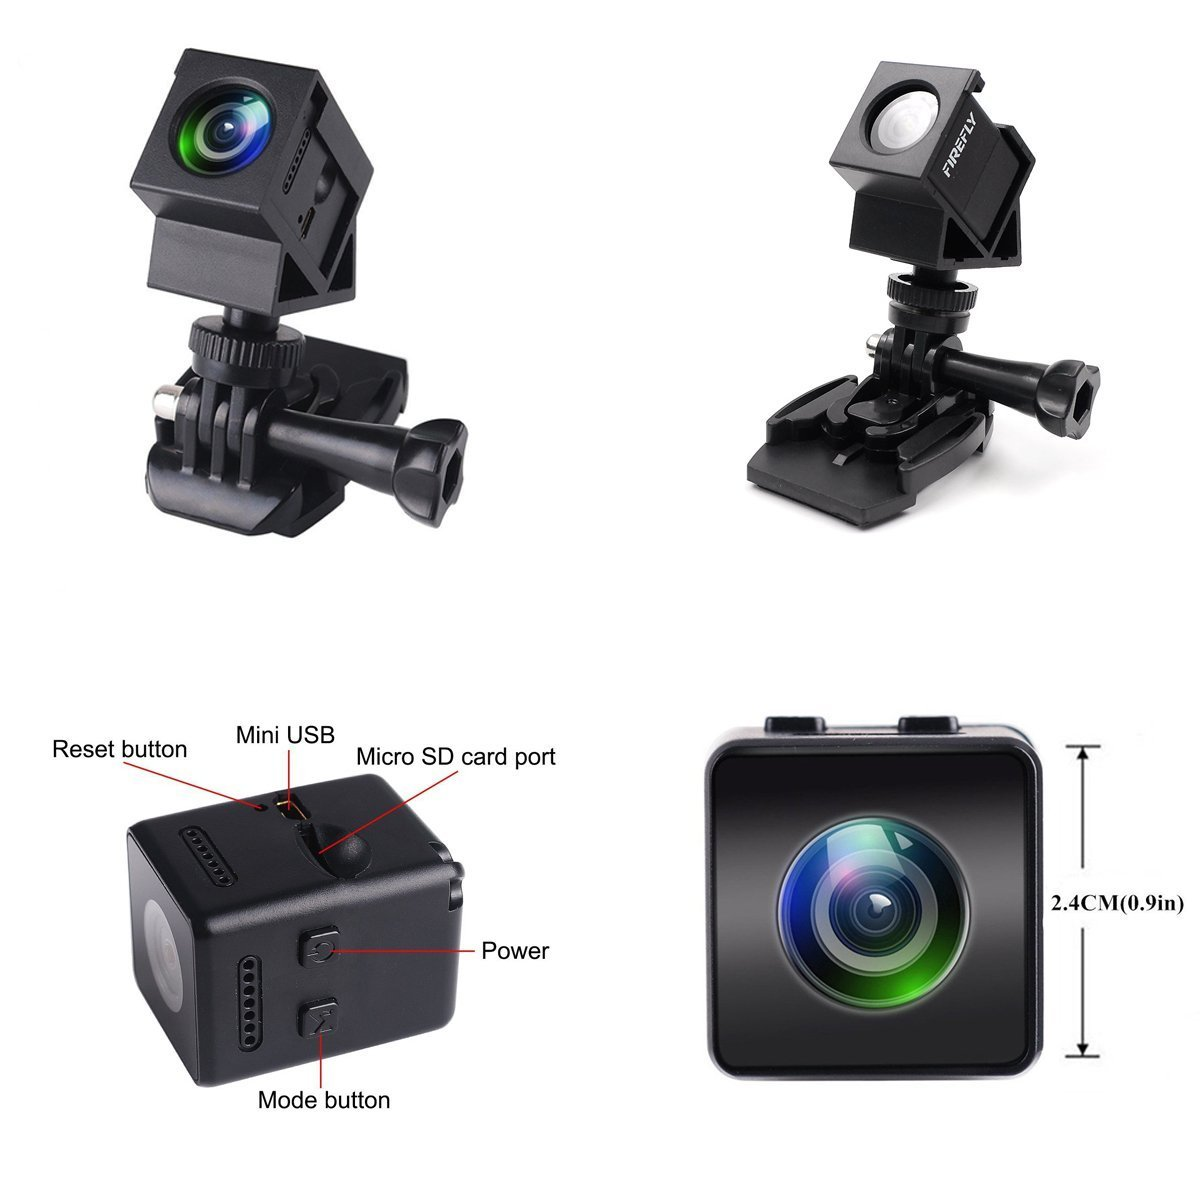 Mini FPV Camera Hawkeye Firefly Spy Camera 160 Degree HD 1080P FPV Micro Action Camera DVR Built-in Mic for RC Drone by Firefly (Image #8)